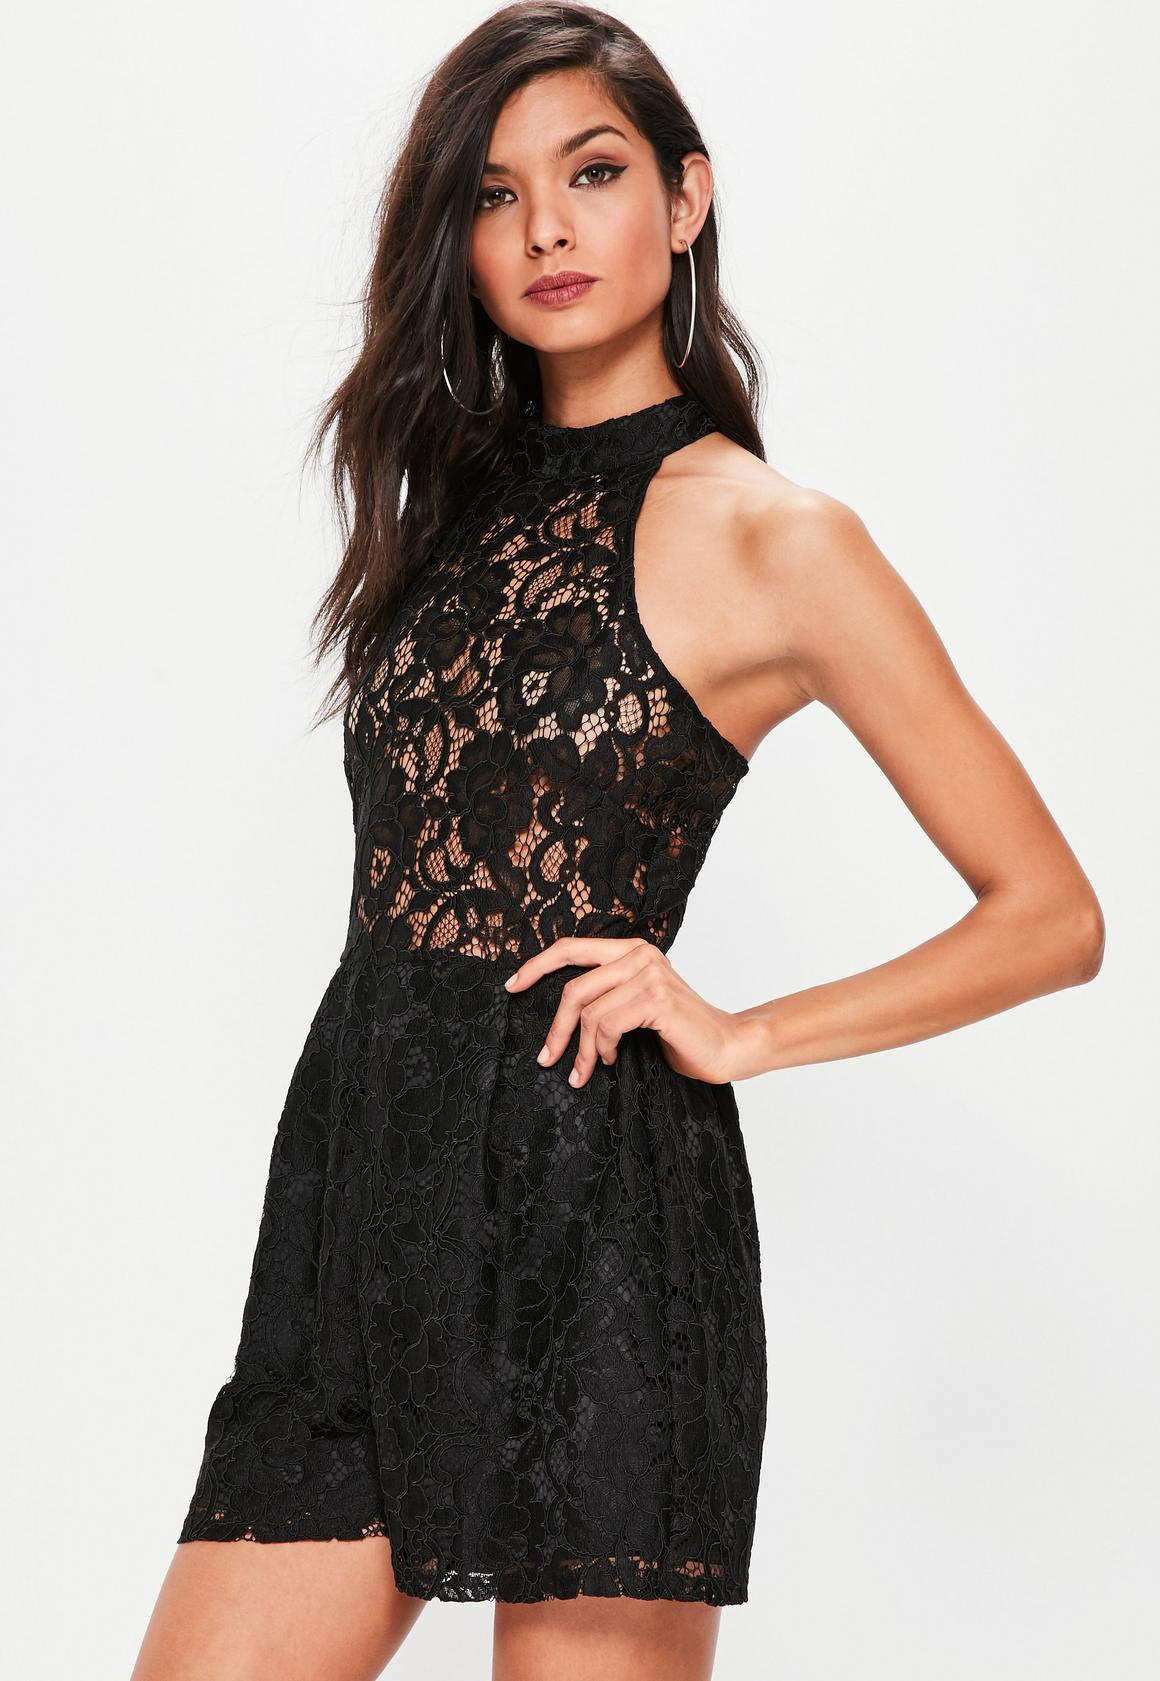 Black dress romper - Previous Next